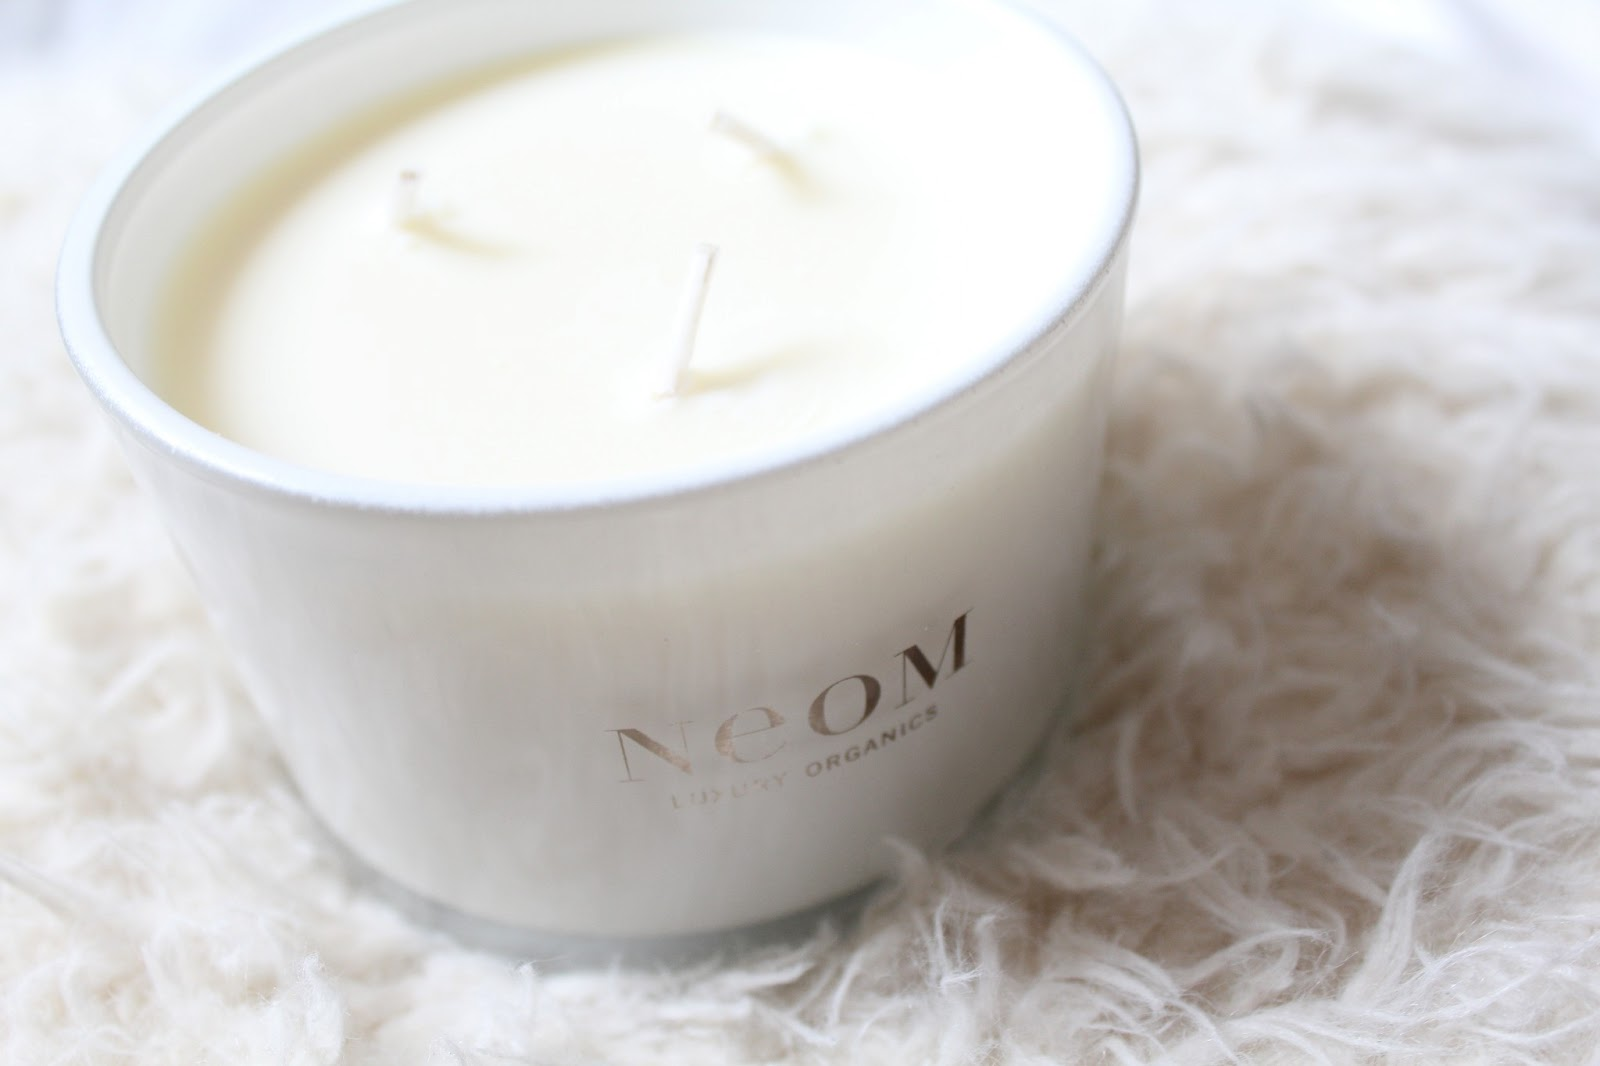 Neom Luxury Organics Enchantment Bluebell Candle